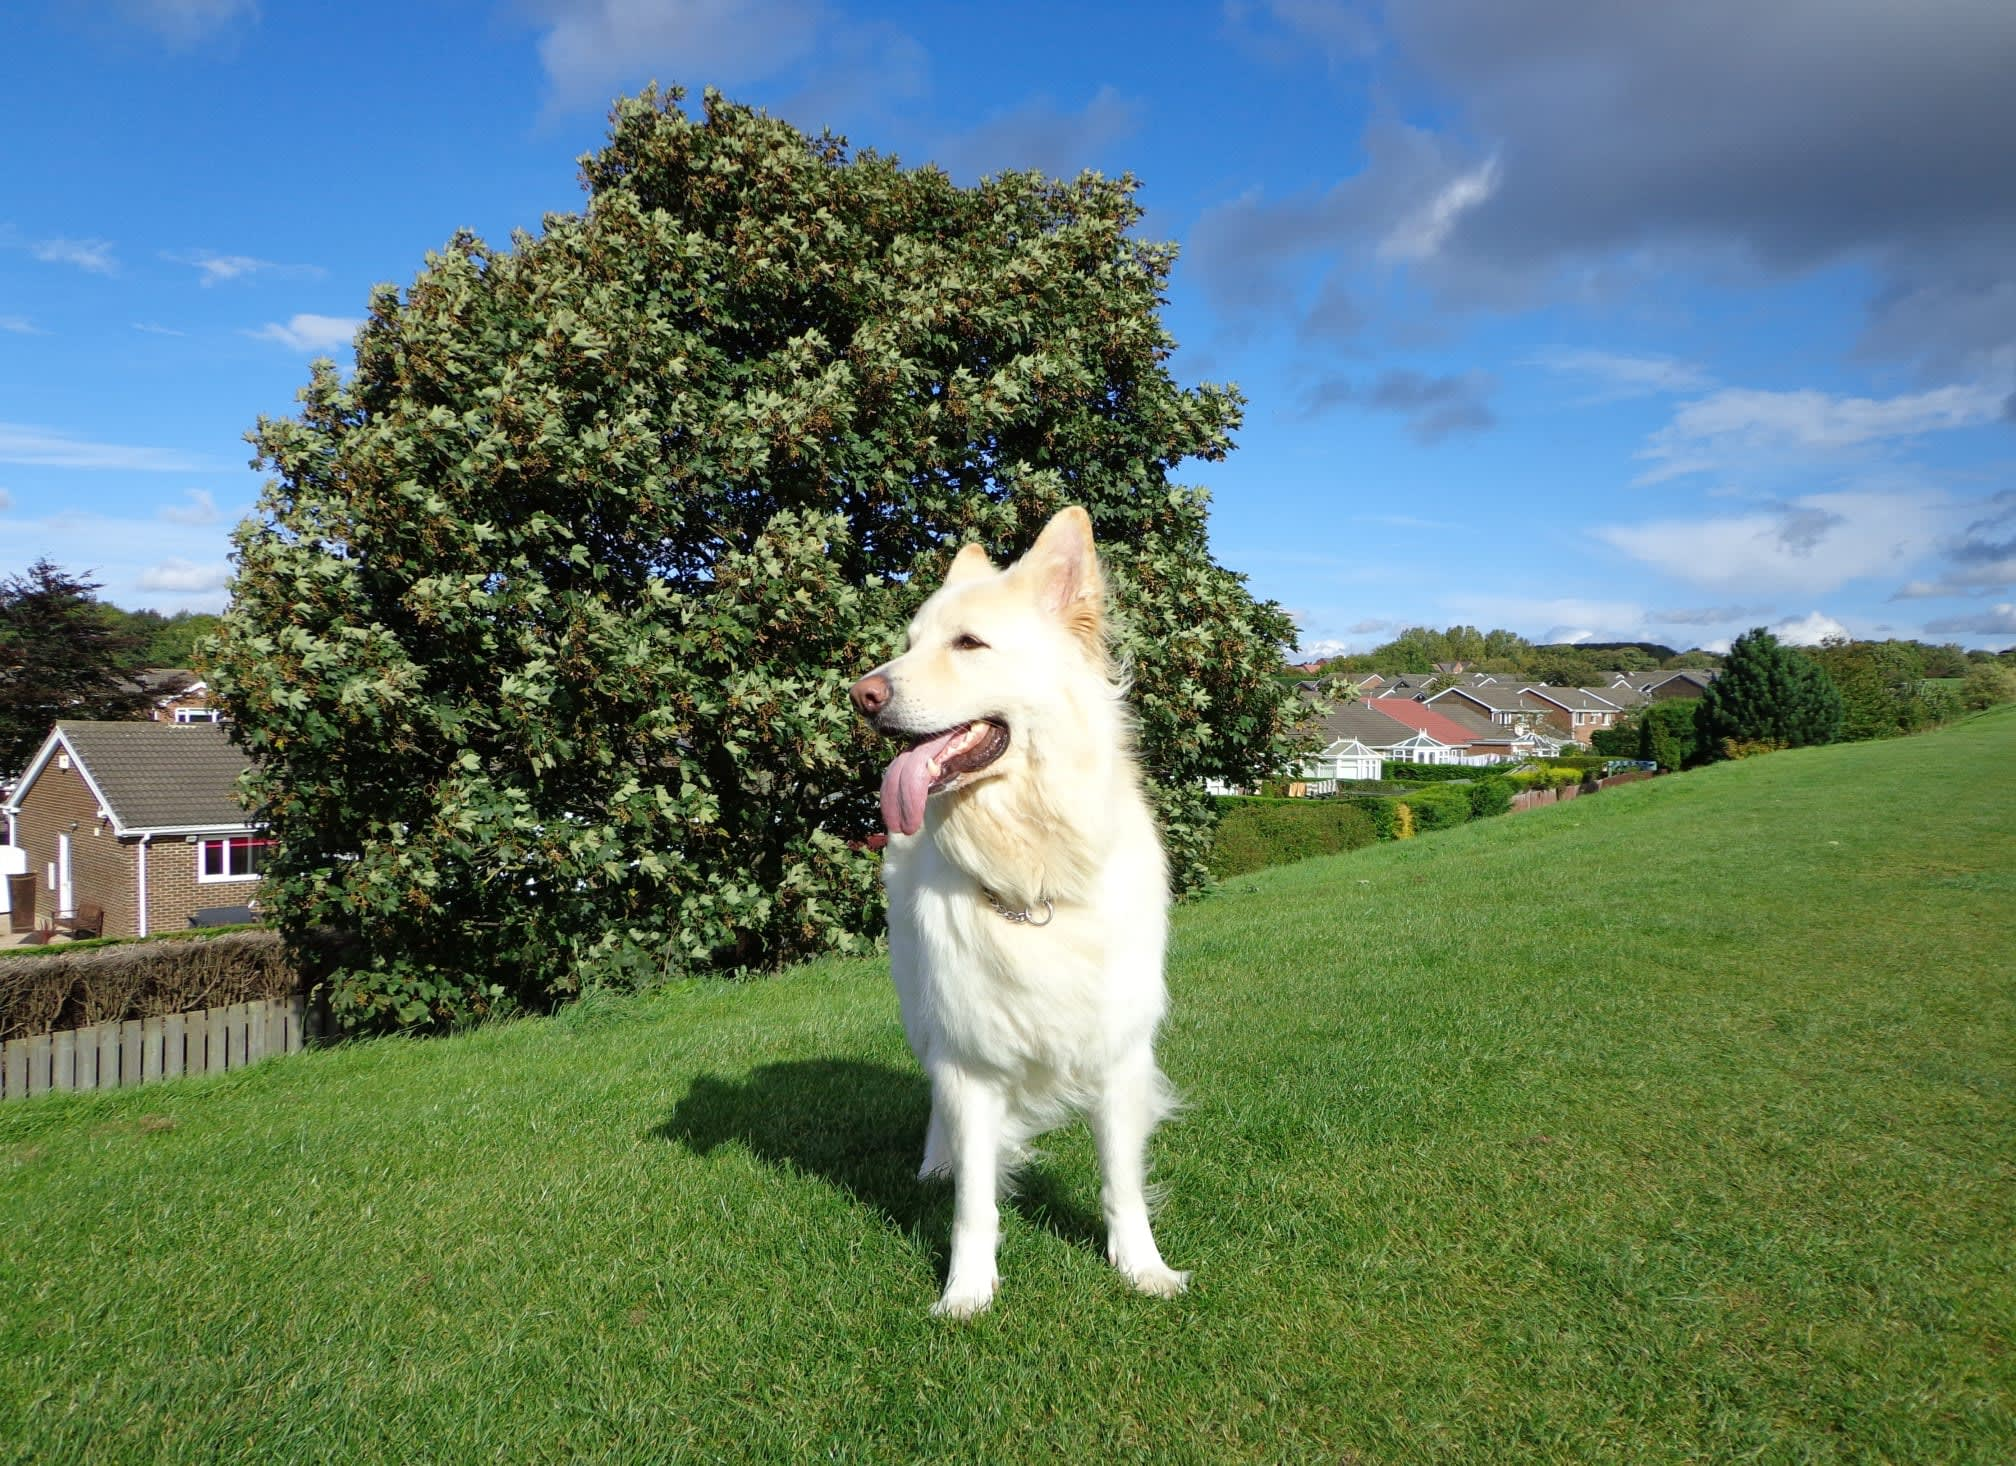 K-9 Companion - Professional One to One Dog Walking | 105 Picktree Lodge, Chester Le Street DH3 4DQ | +44 7903 297719